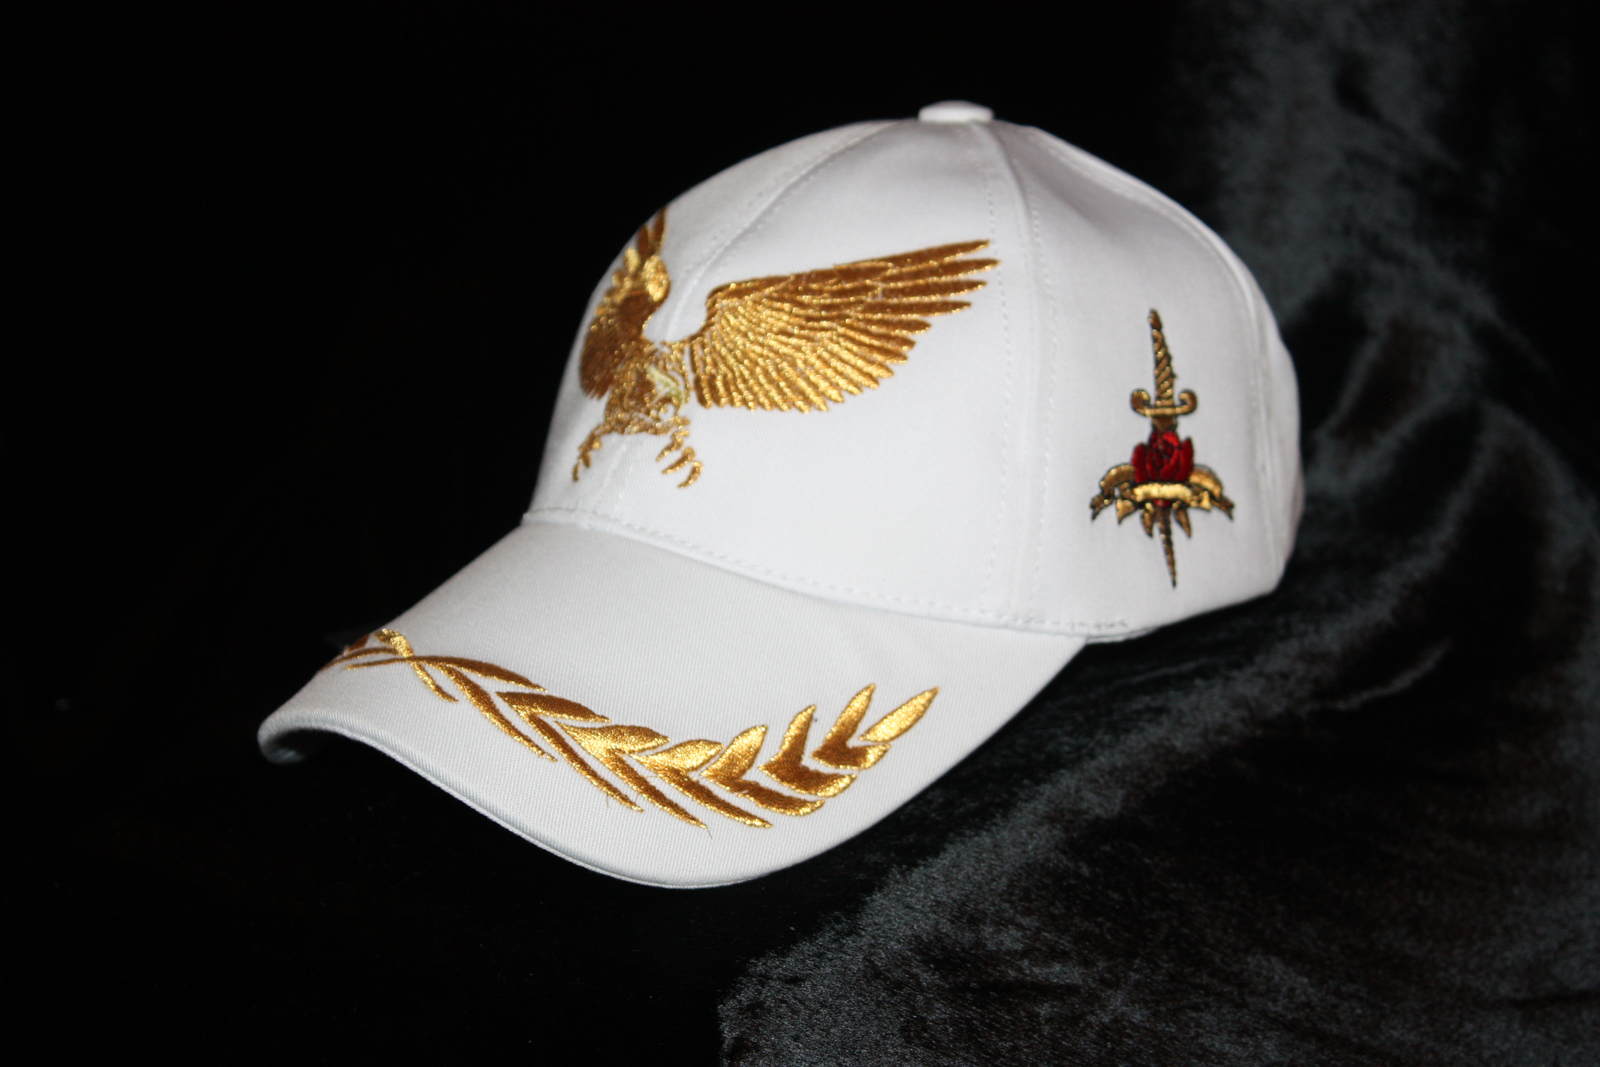 cool_baseball_cap_eagle_golden_white_trucker_hat_glam_rock_urban_wear_hats_and_caps_6.JPG